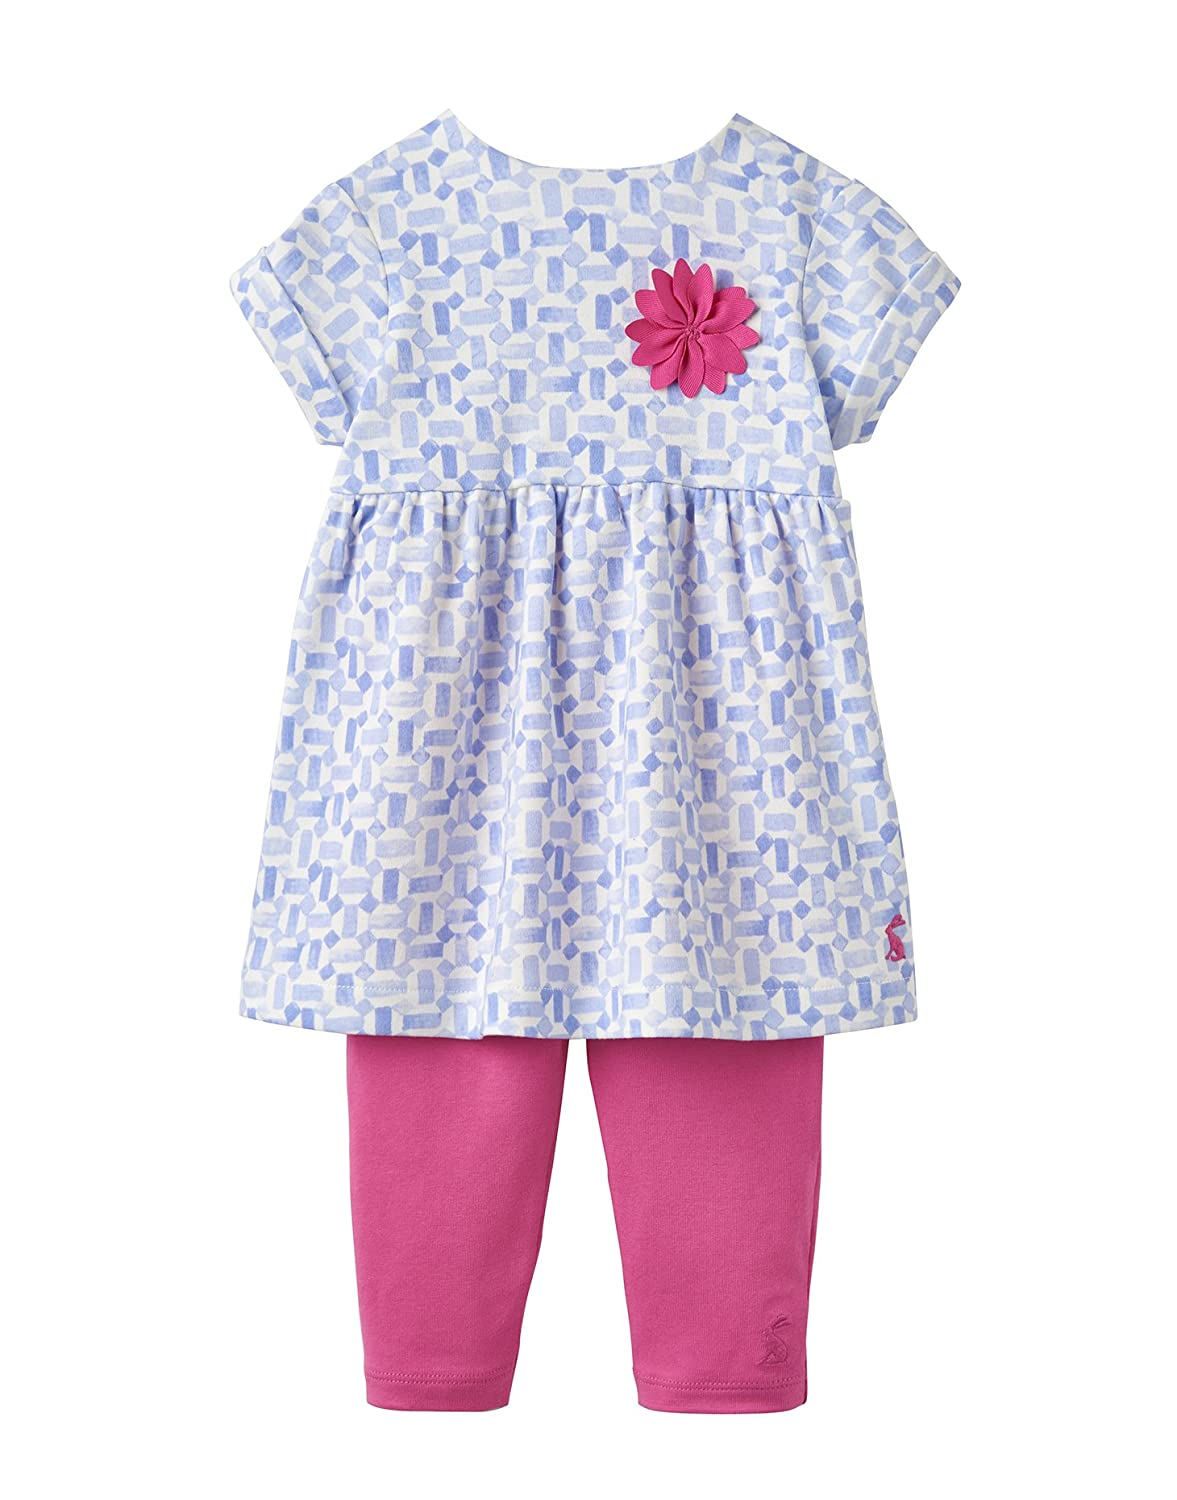 cedc21b07 Amazon.com: Joules Baby Dress and Leggings Set - Sky Blue Tile: Clothing